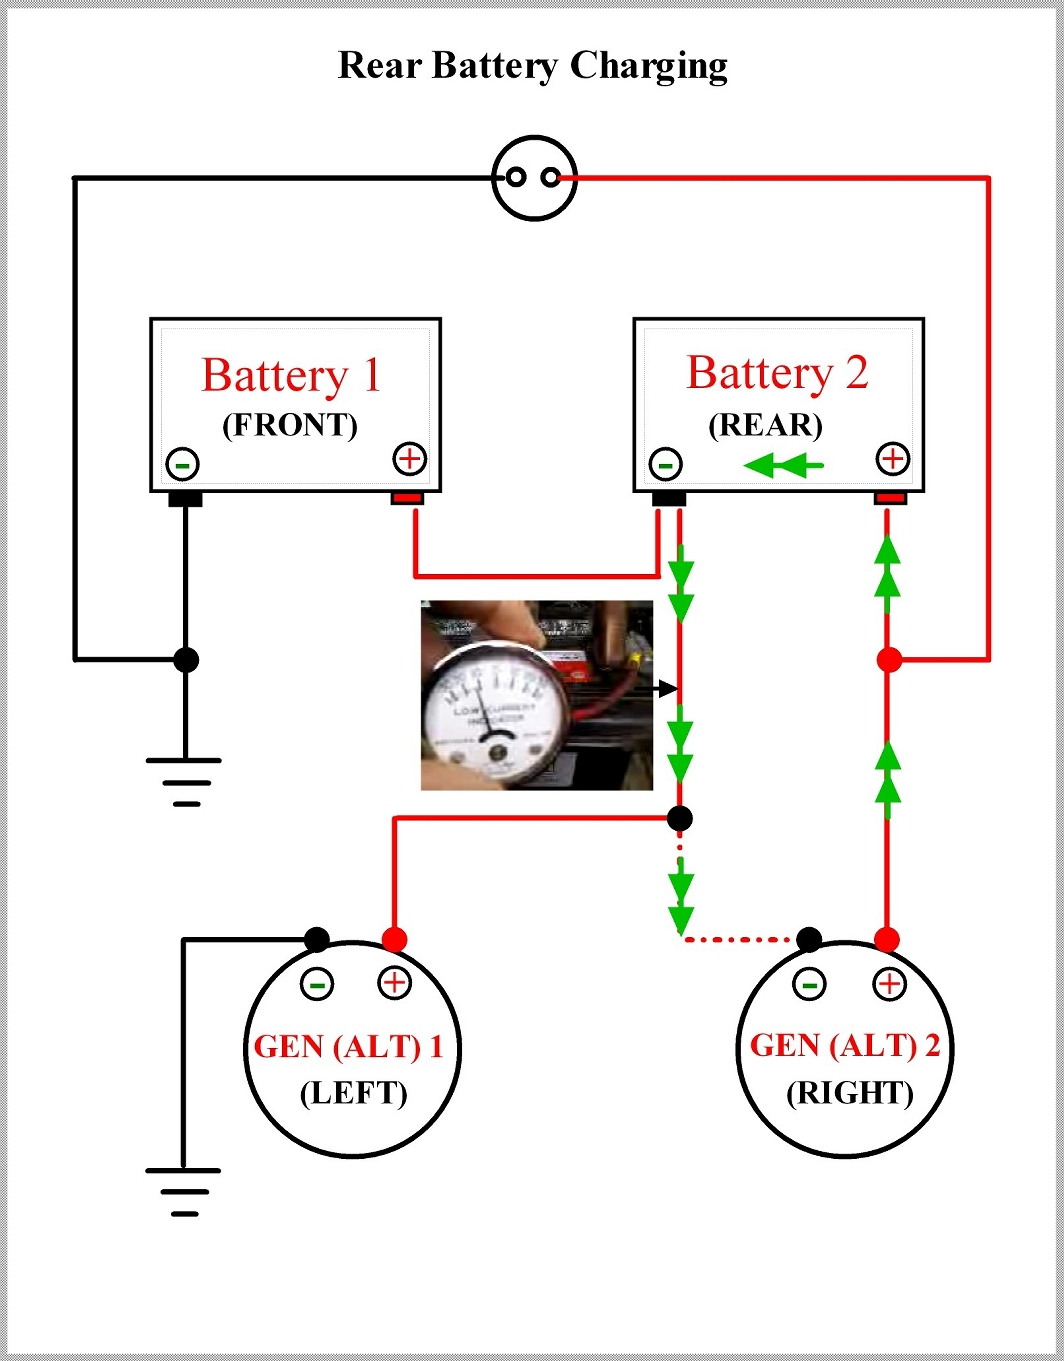 m1008 cucv wiring diagram funny flow pictorial showing charging current flowing get